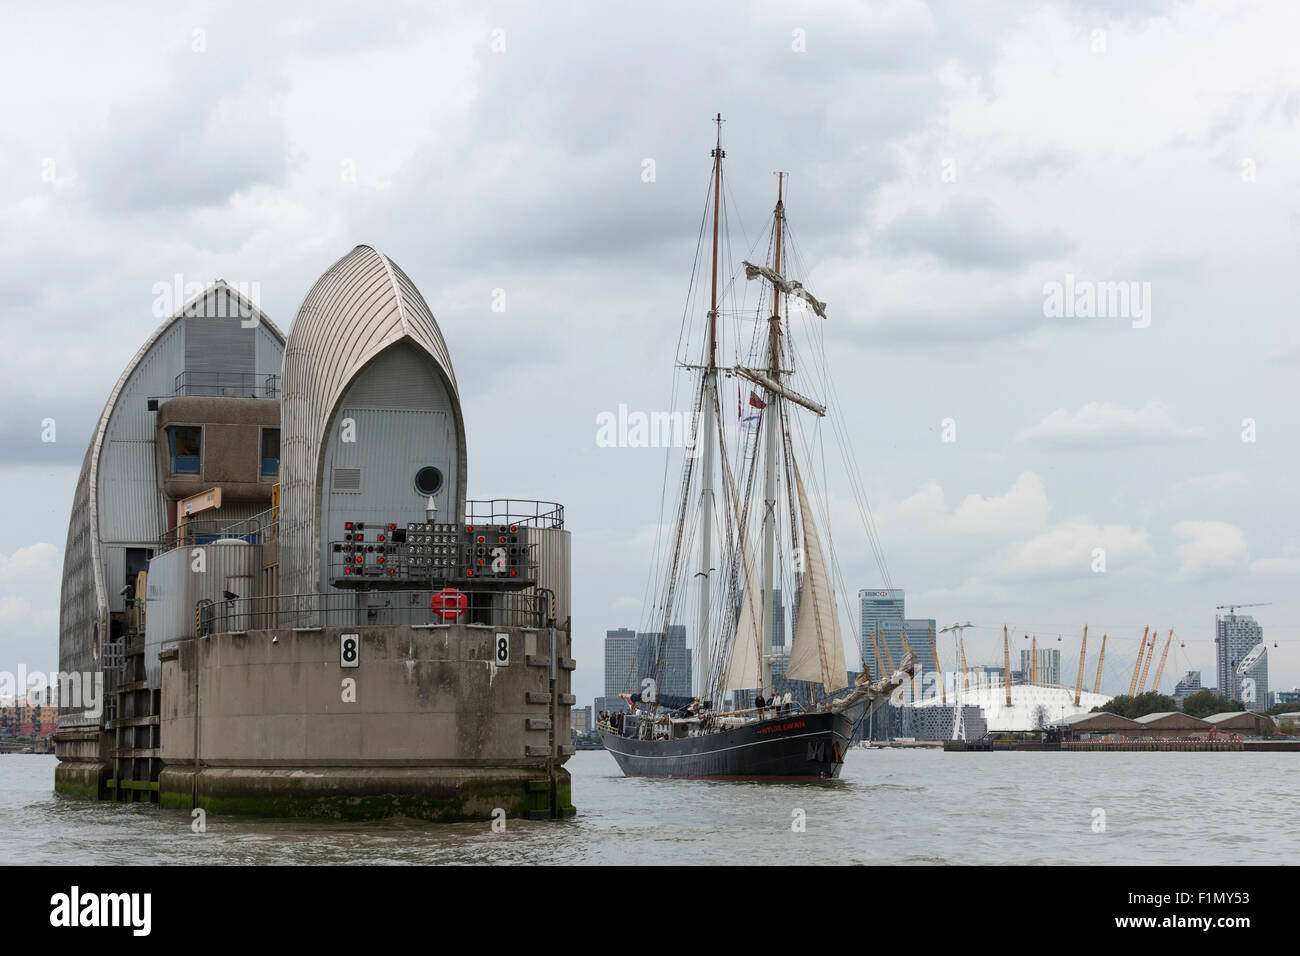 Royal Greenwich Tall Ships Festival 2015 on the River Thames with tall ship Wylde Swan (NL) passing the Thames Barrier, - Stock Image